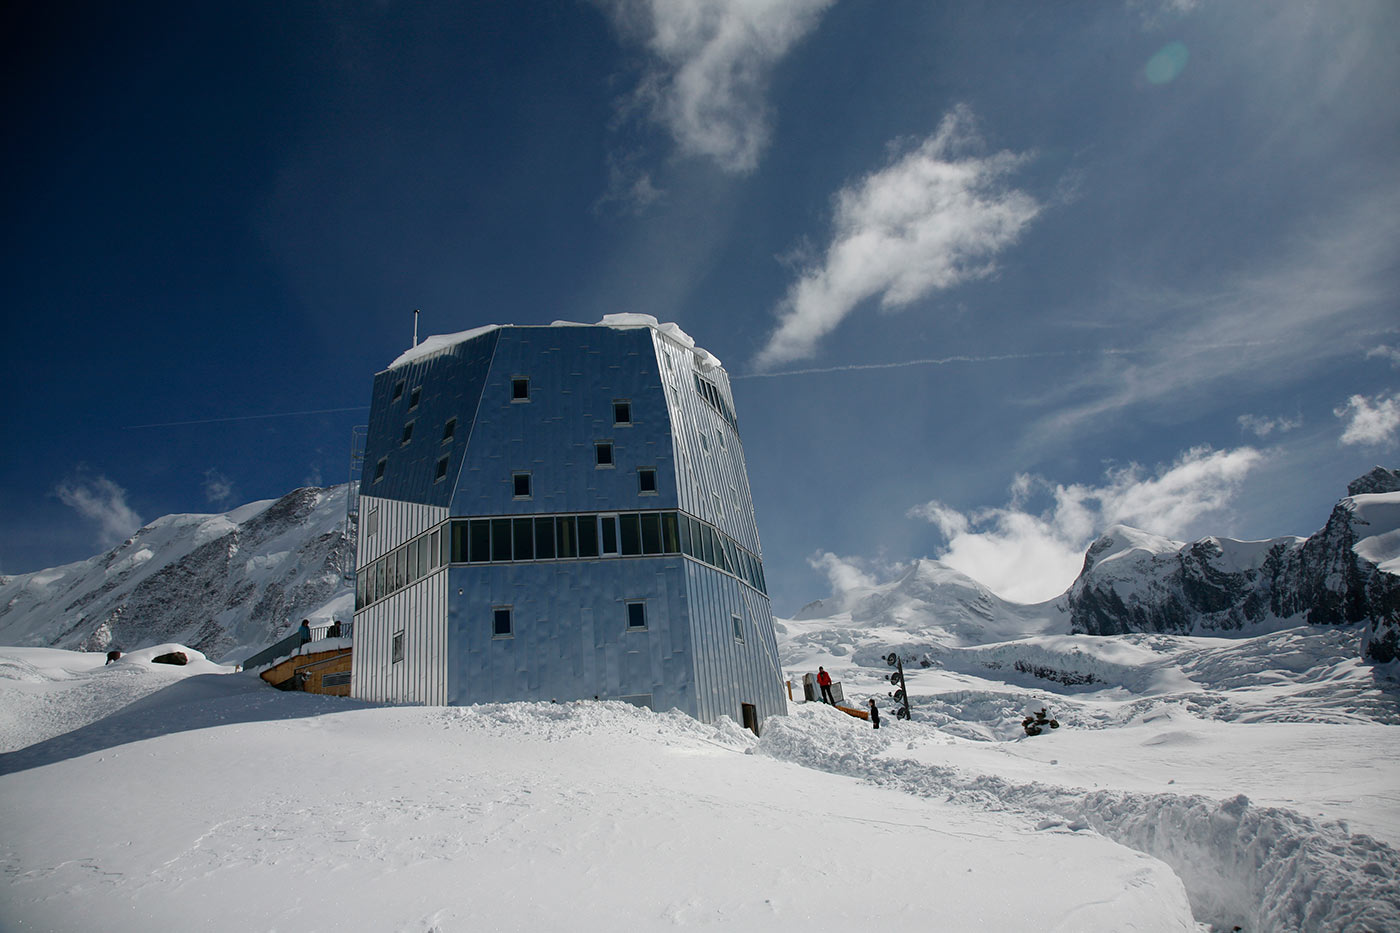 Serious mountaineering skills are required to even reach the Monte Rosa hut